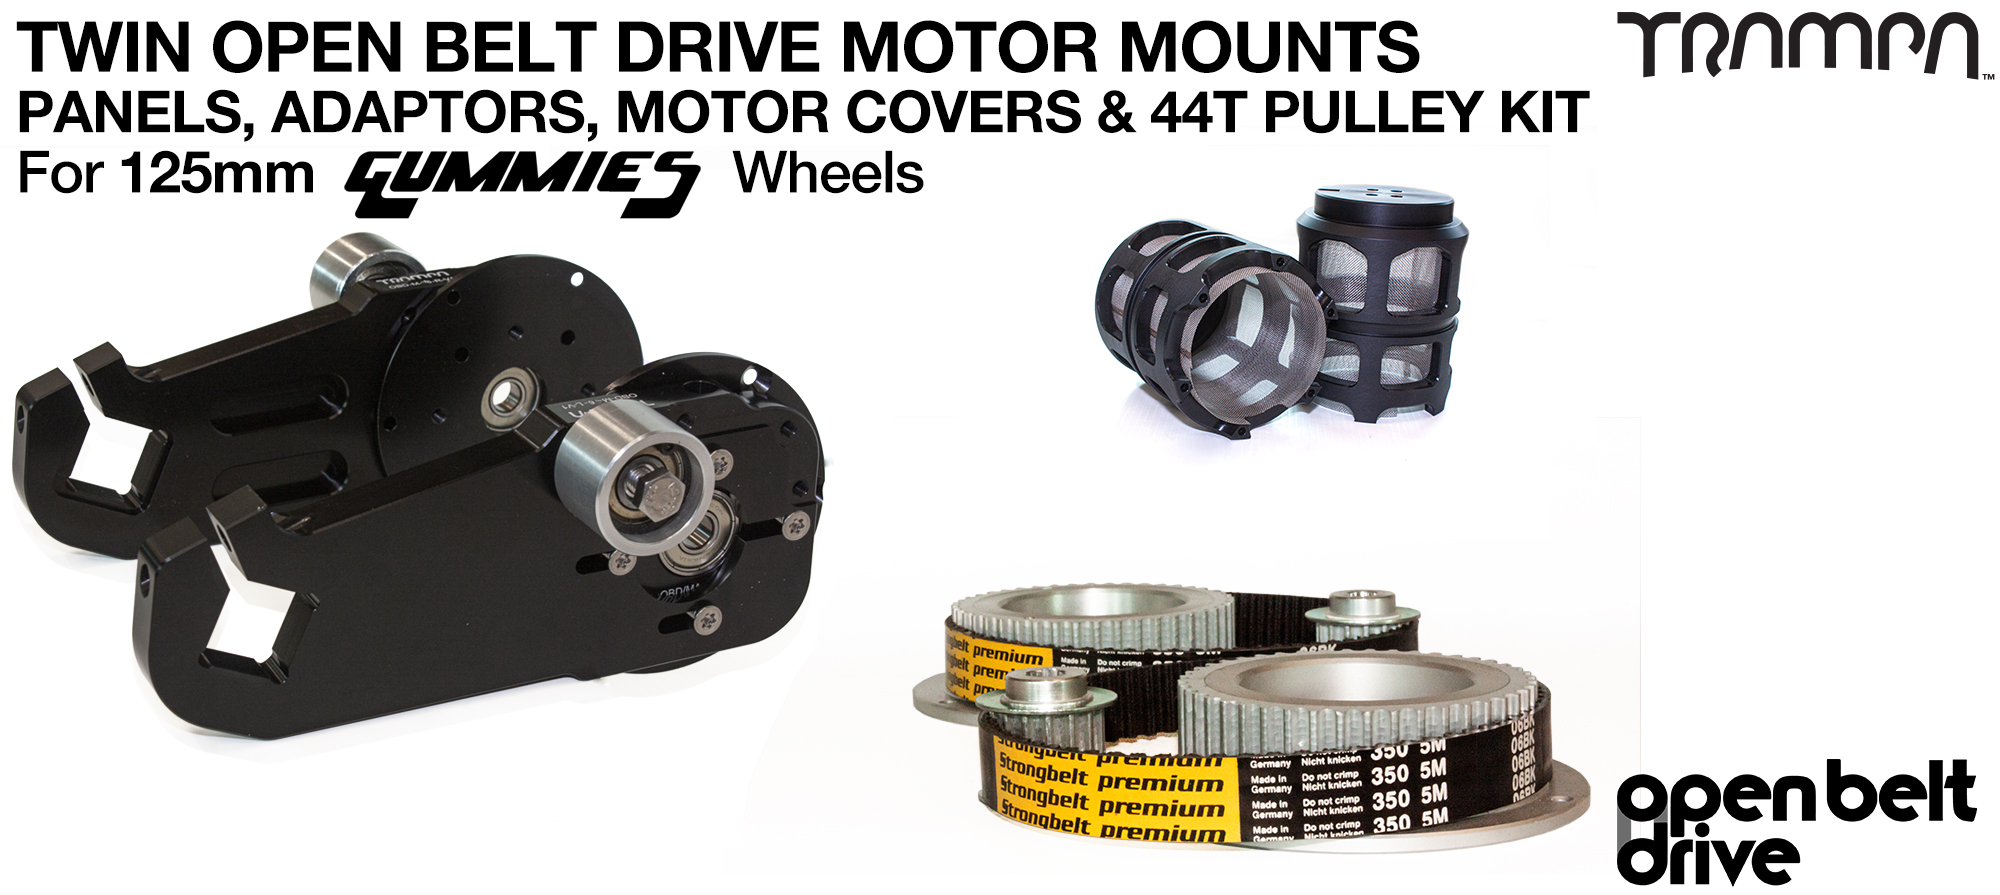 66T OBD Motor Mount with 44T Pulley kit & Motor Filters - TWIN